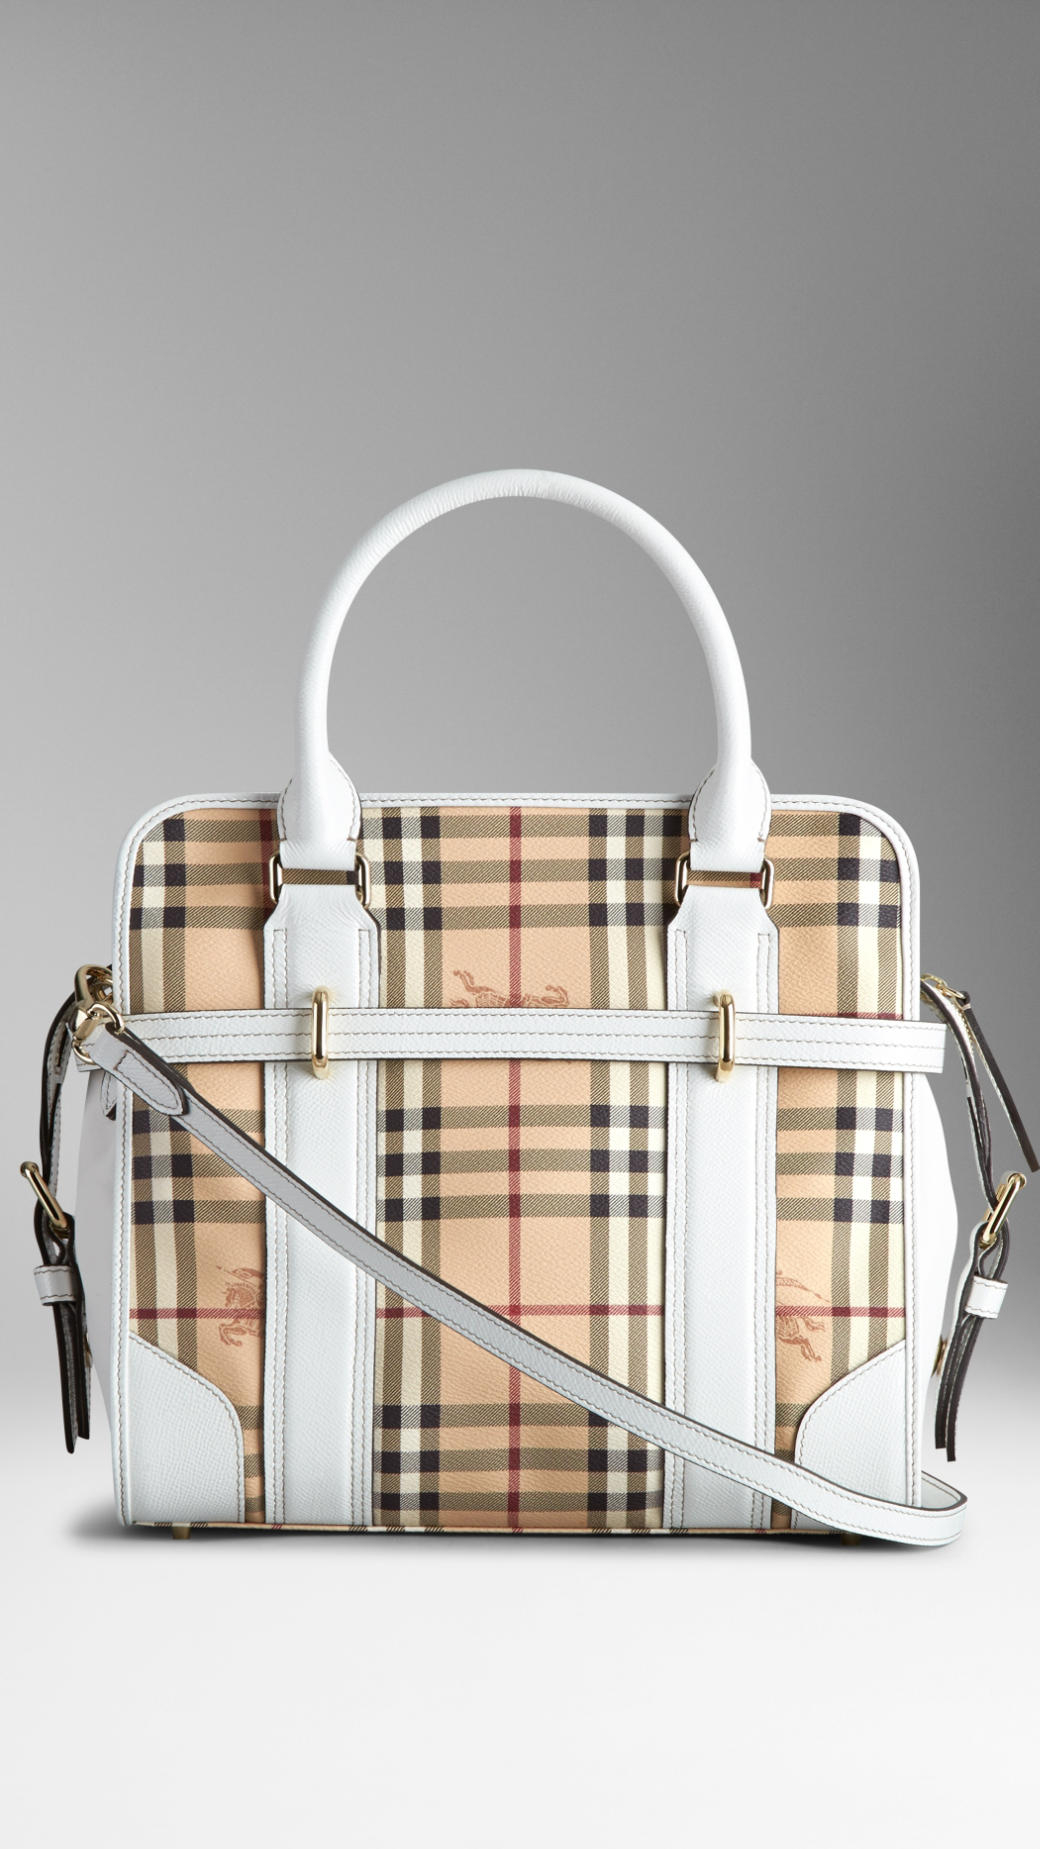 Lyst - Burberry Medium Haymarket Check And Leather Tote Bag in Brown 9a33cff7ebdf4